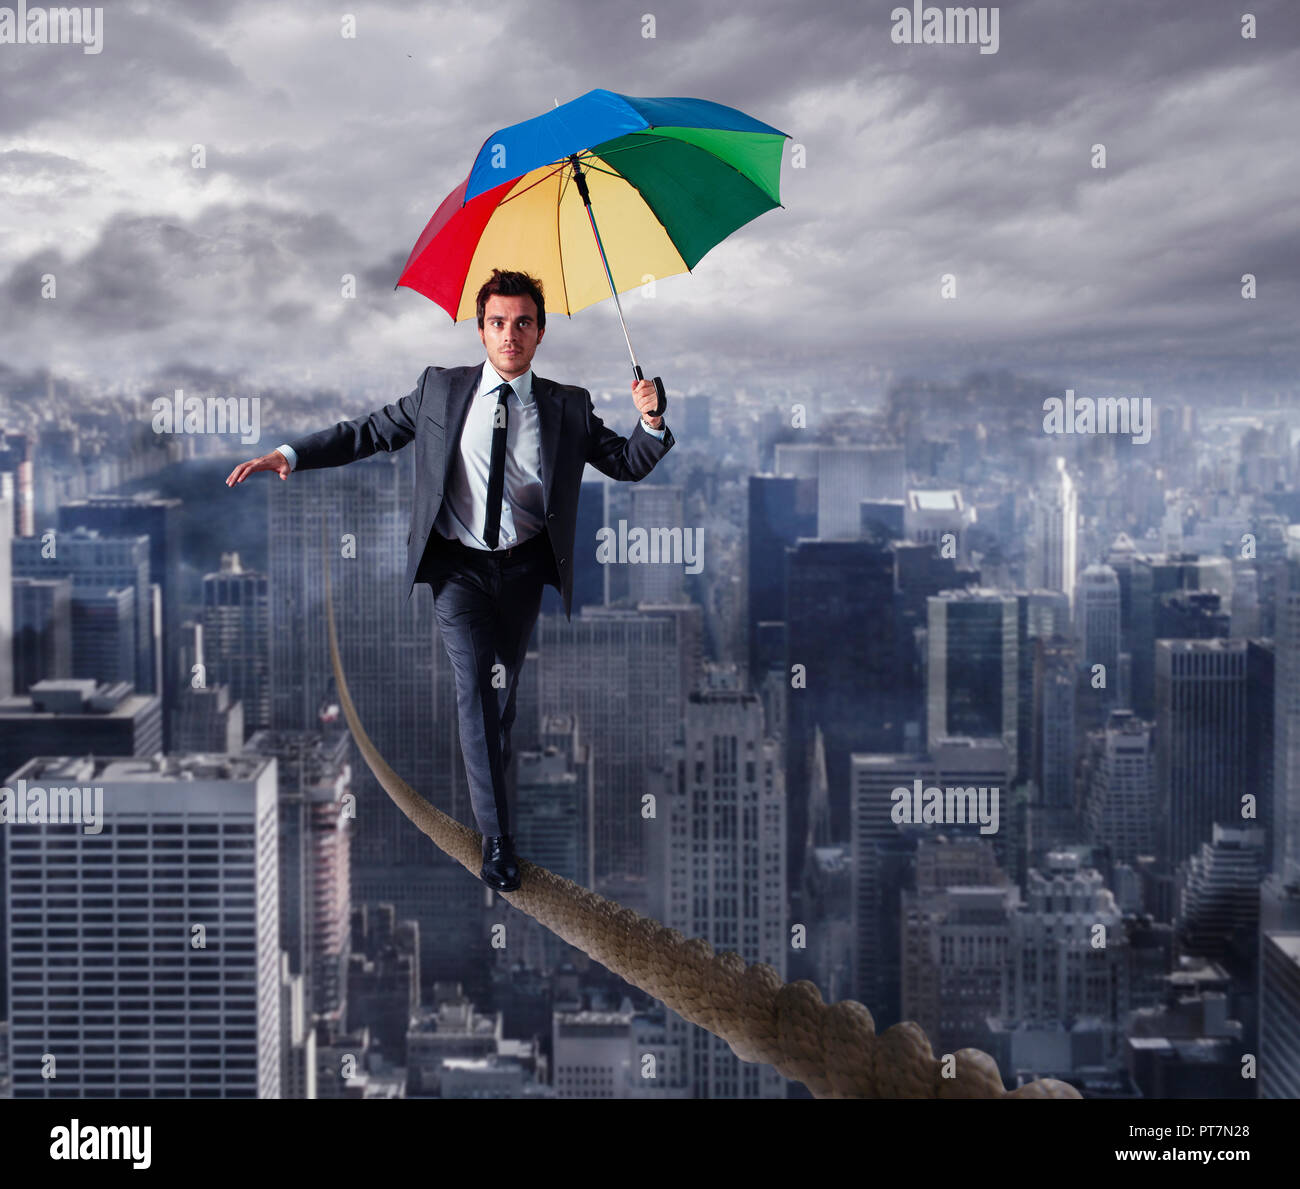 Equilibrist businessman walk on a rope with umbrella over the city. Concept of overcome the problems and positivity - Stock Image